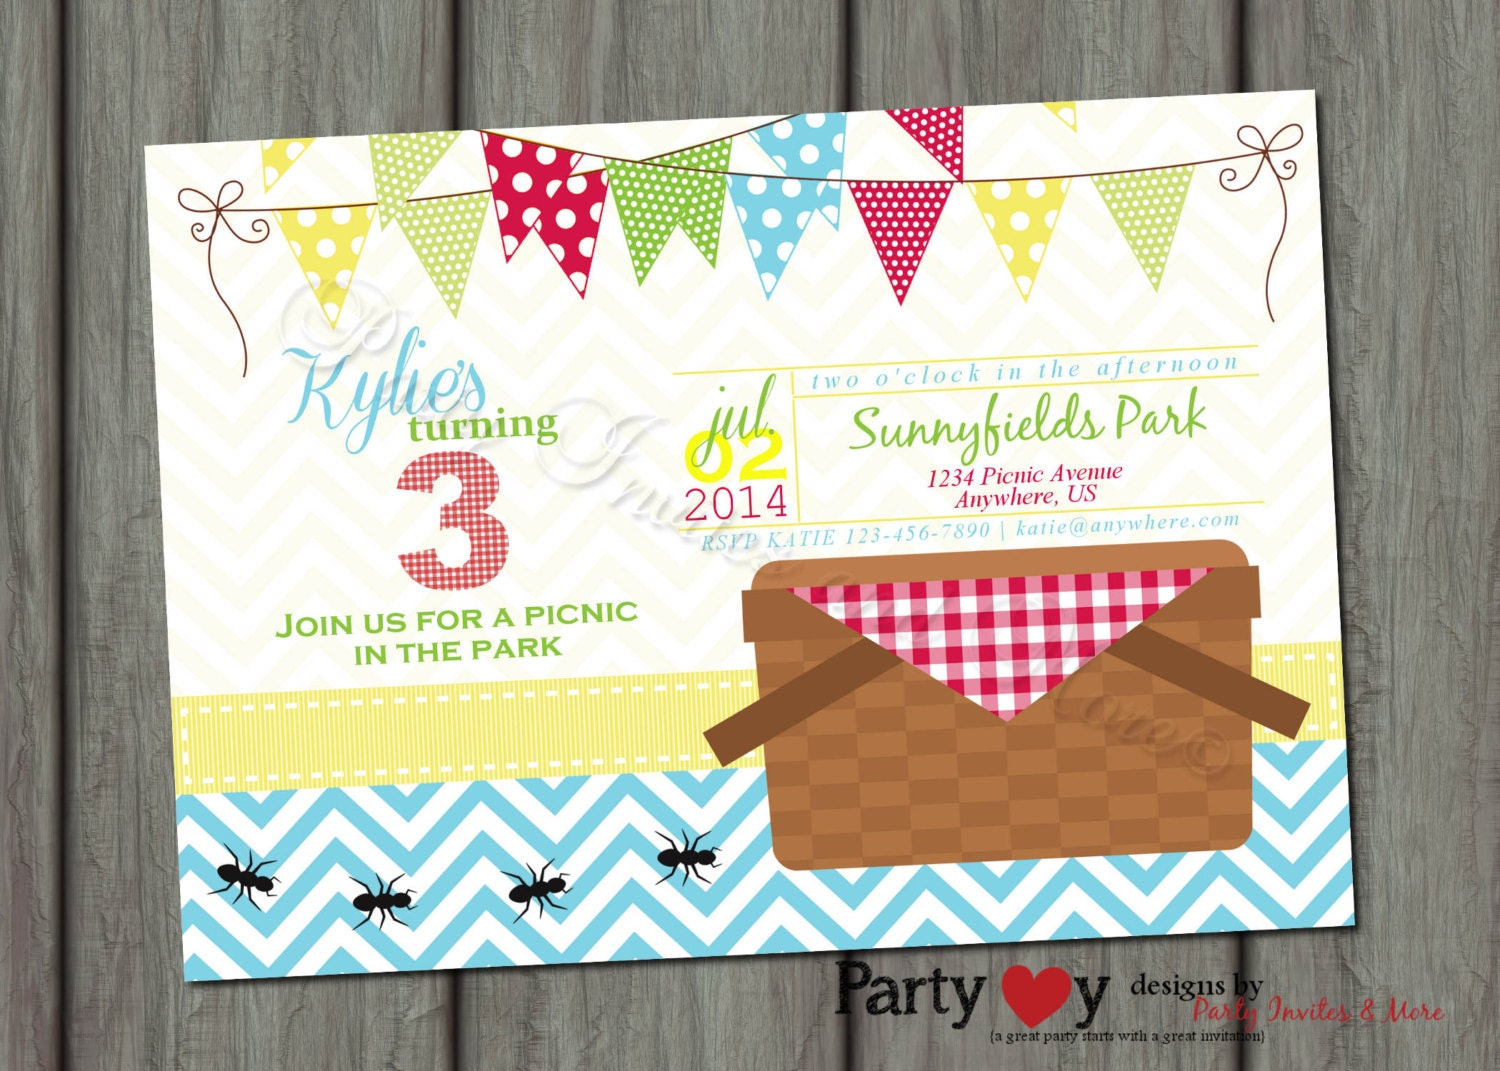 Teddy Bear Picnic Invitations with nice invitation layout